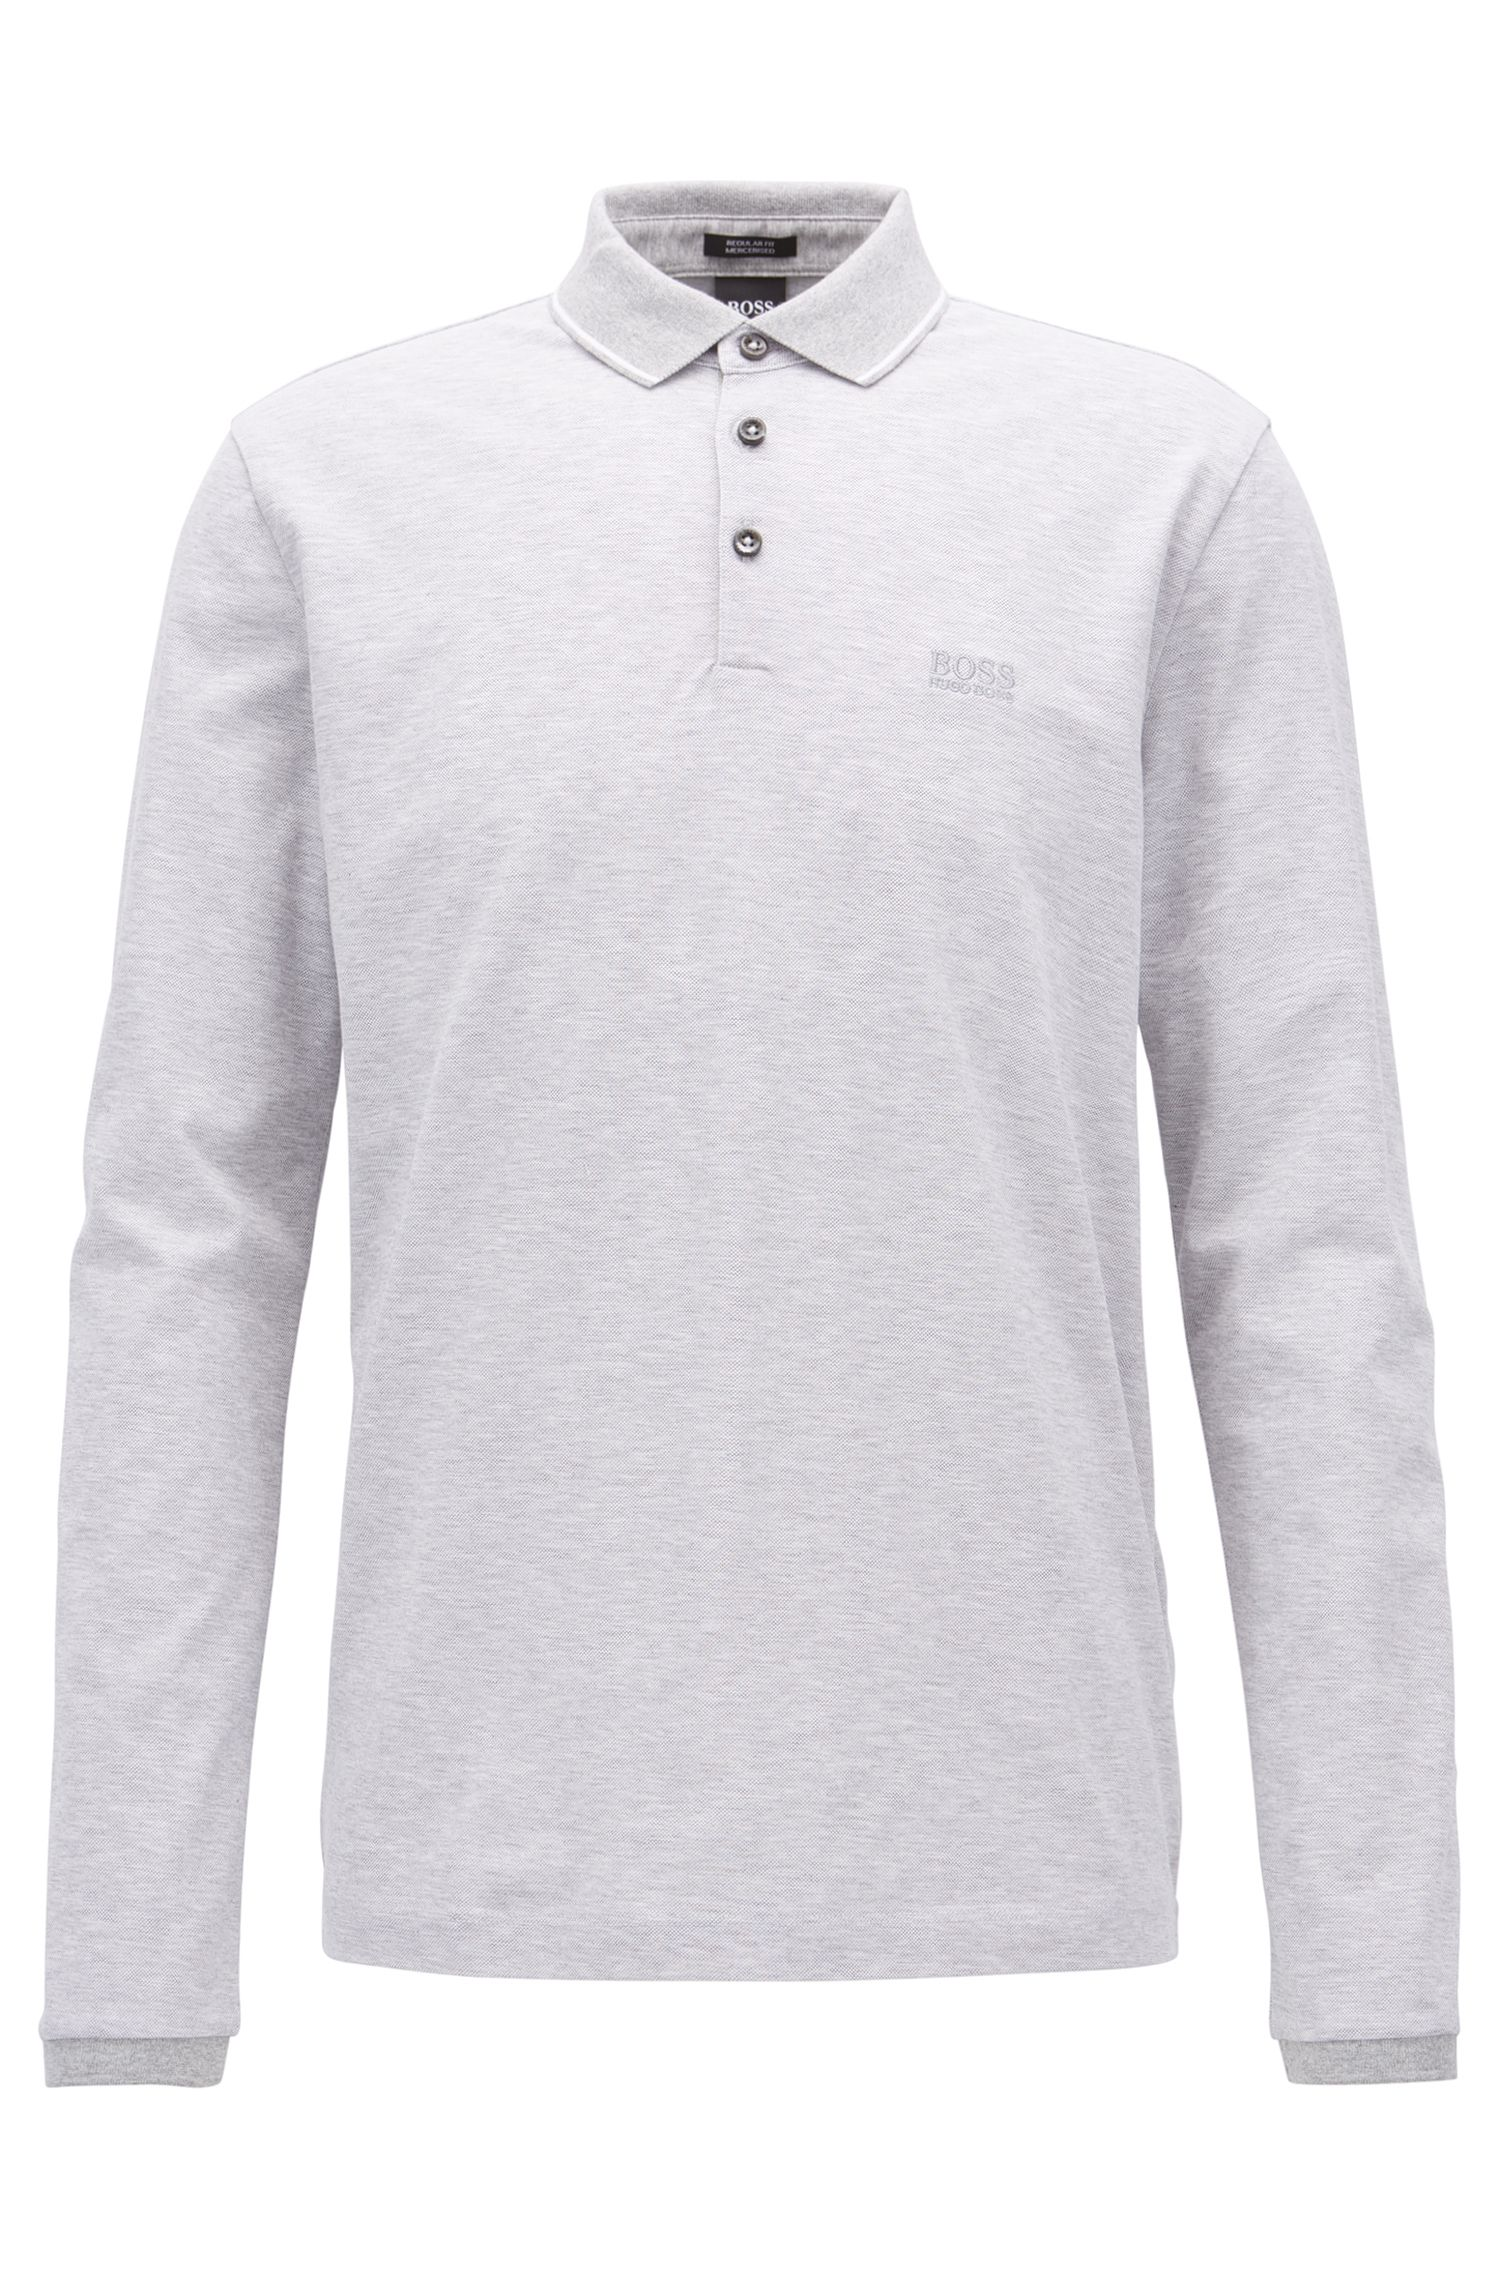 Long-sleeved polo shirt in mercerised cotton